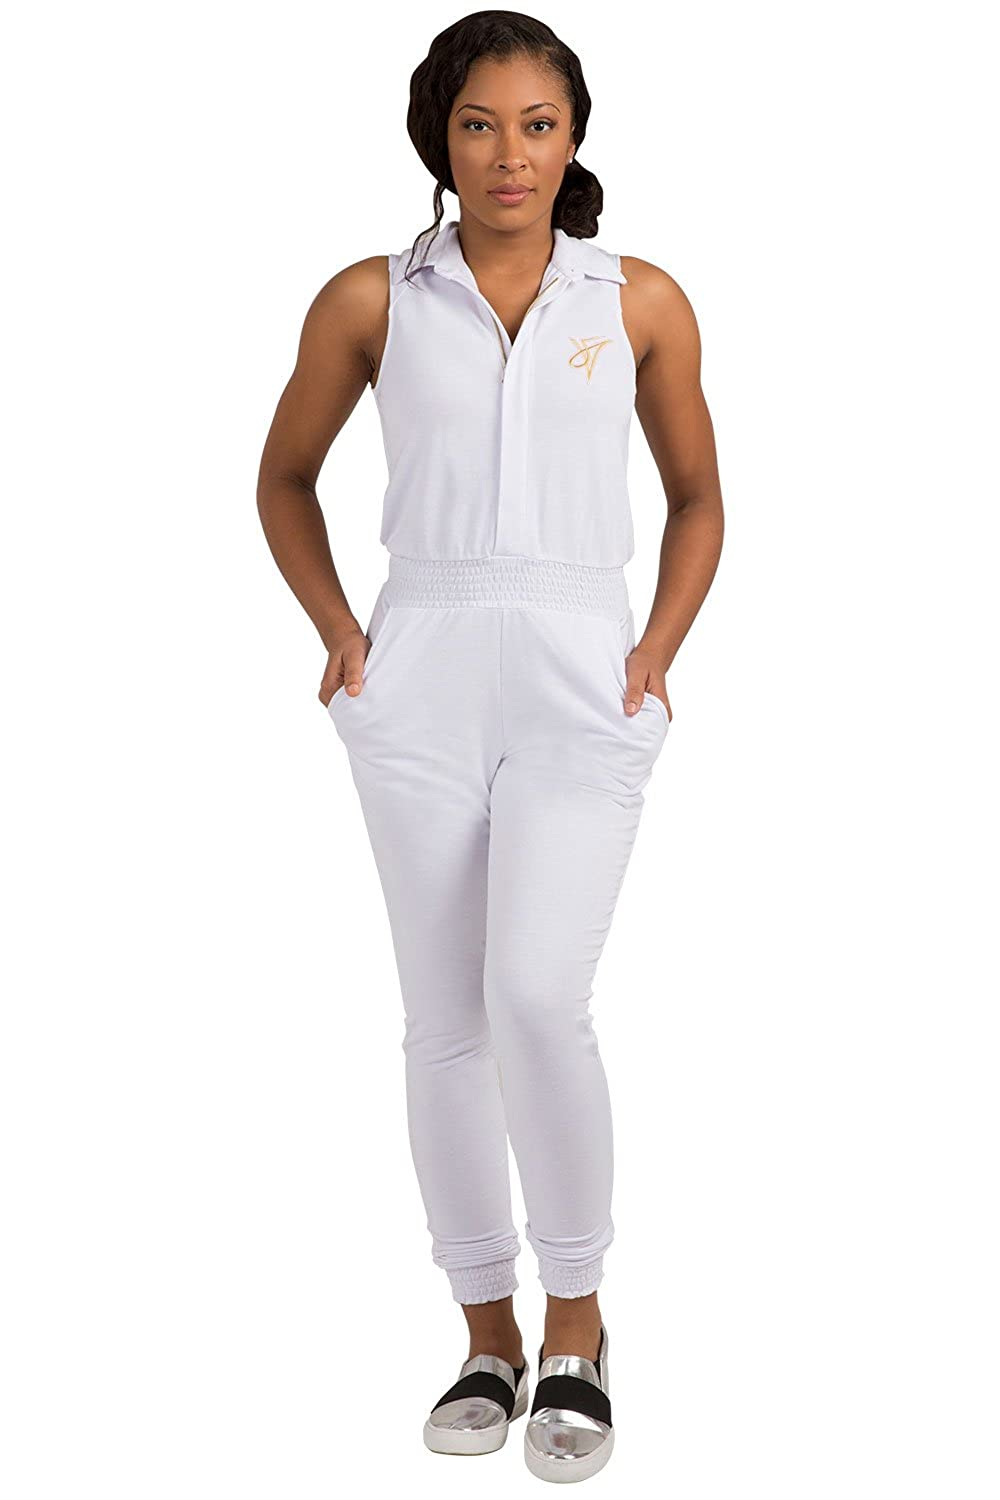 89f91be2c40 Amazon.com  Poetic Justice Curvy Women s White Sleeveless Stretch Collared  Jumpsuit  Clothing